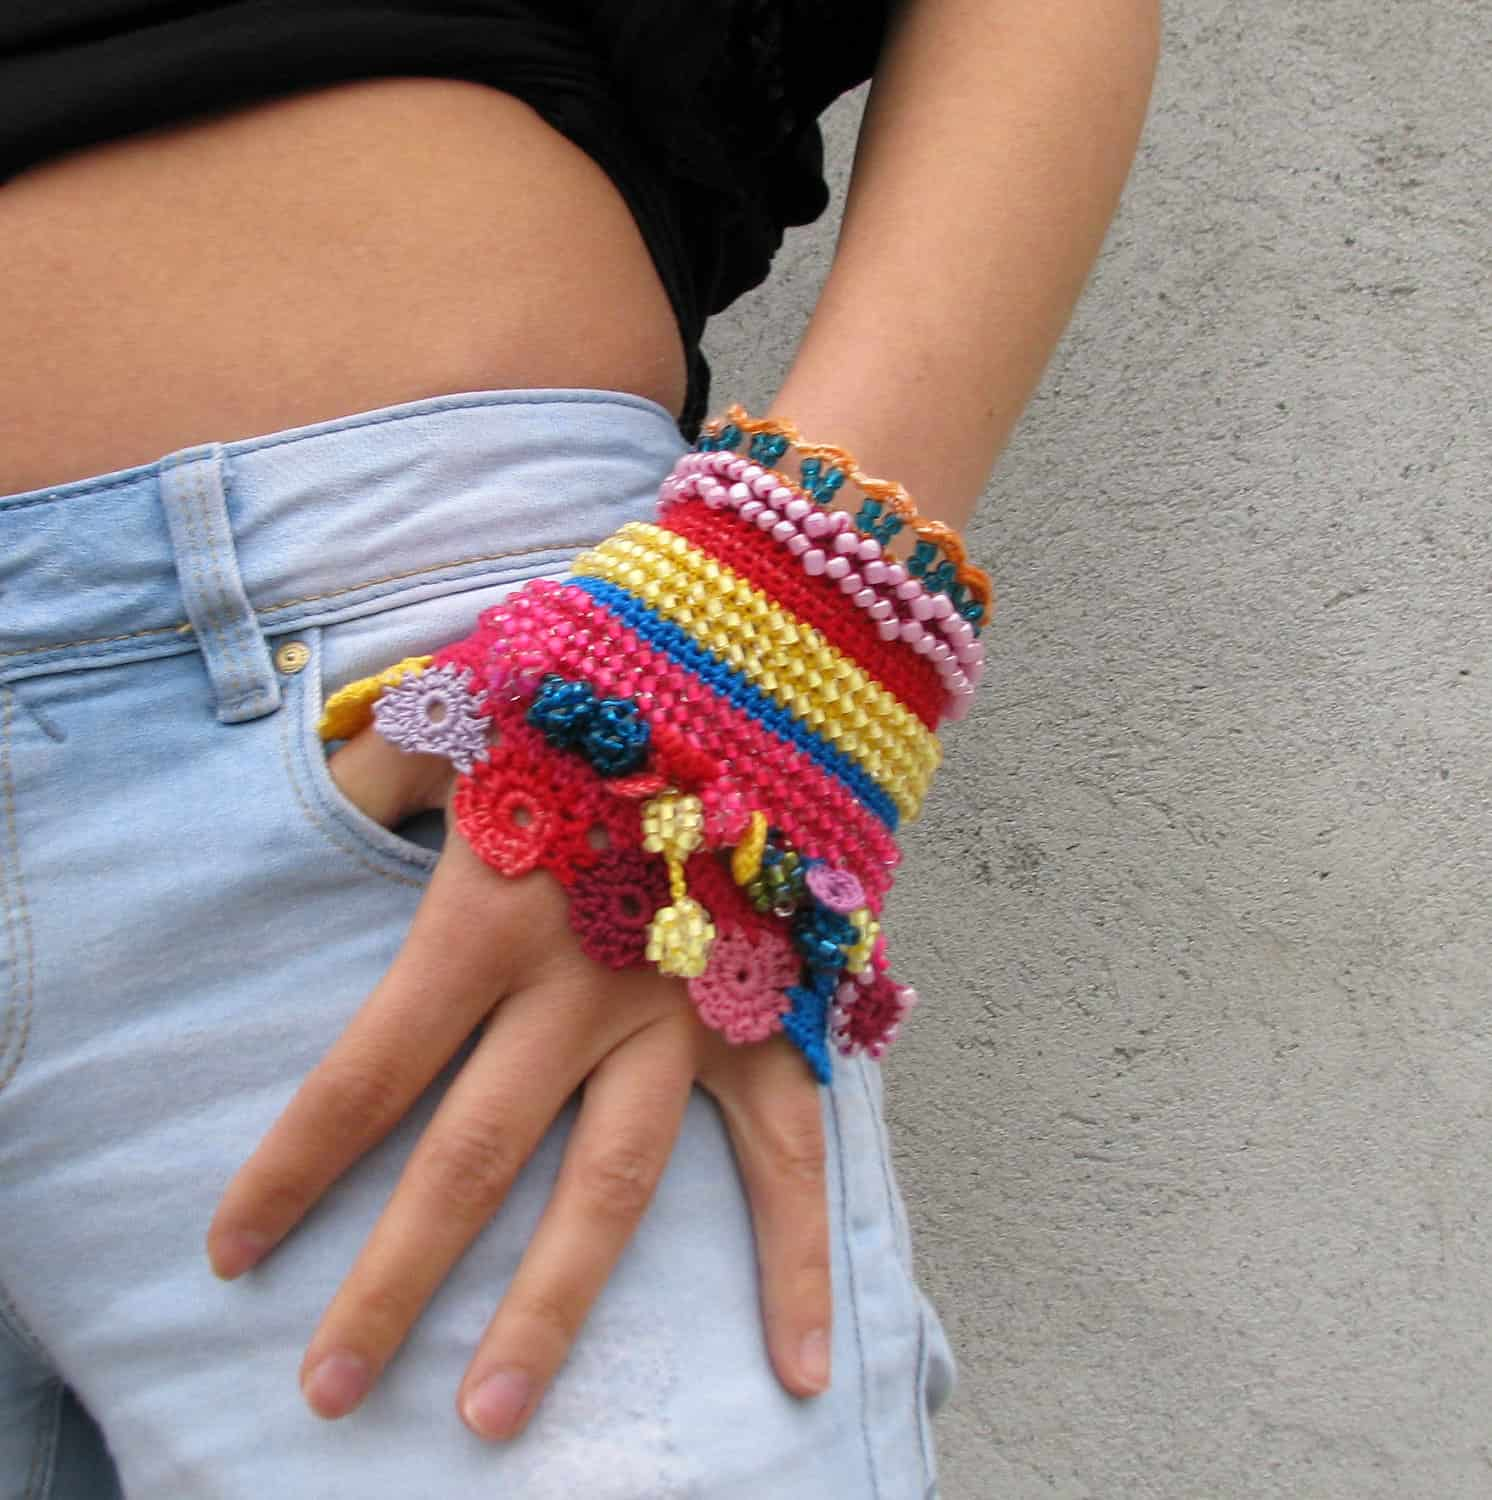 Beaded and lace crochet cuffs